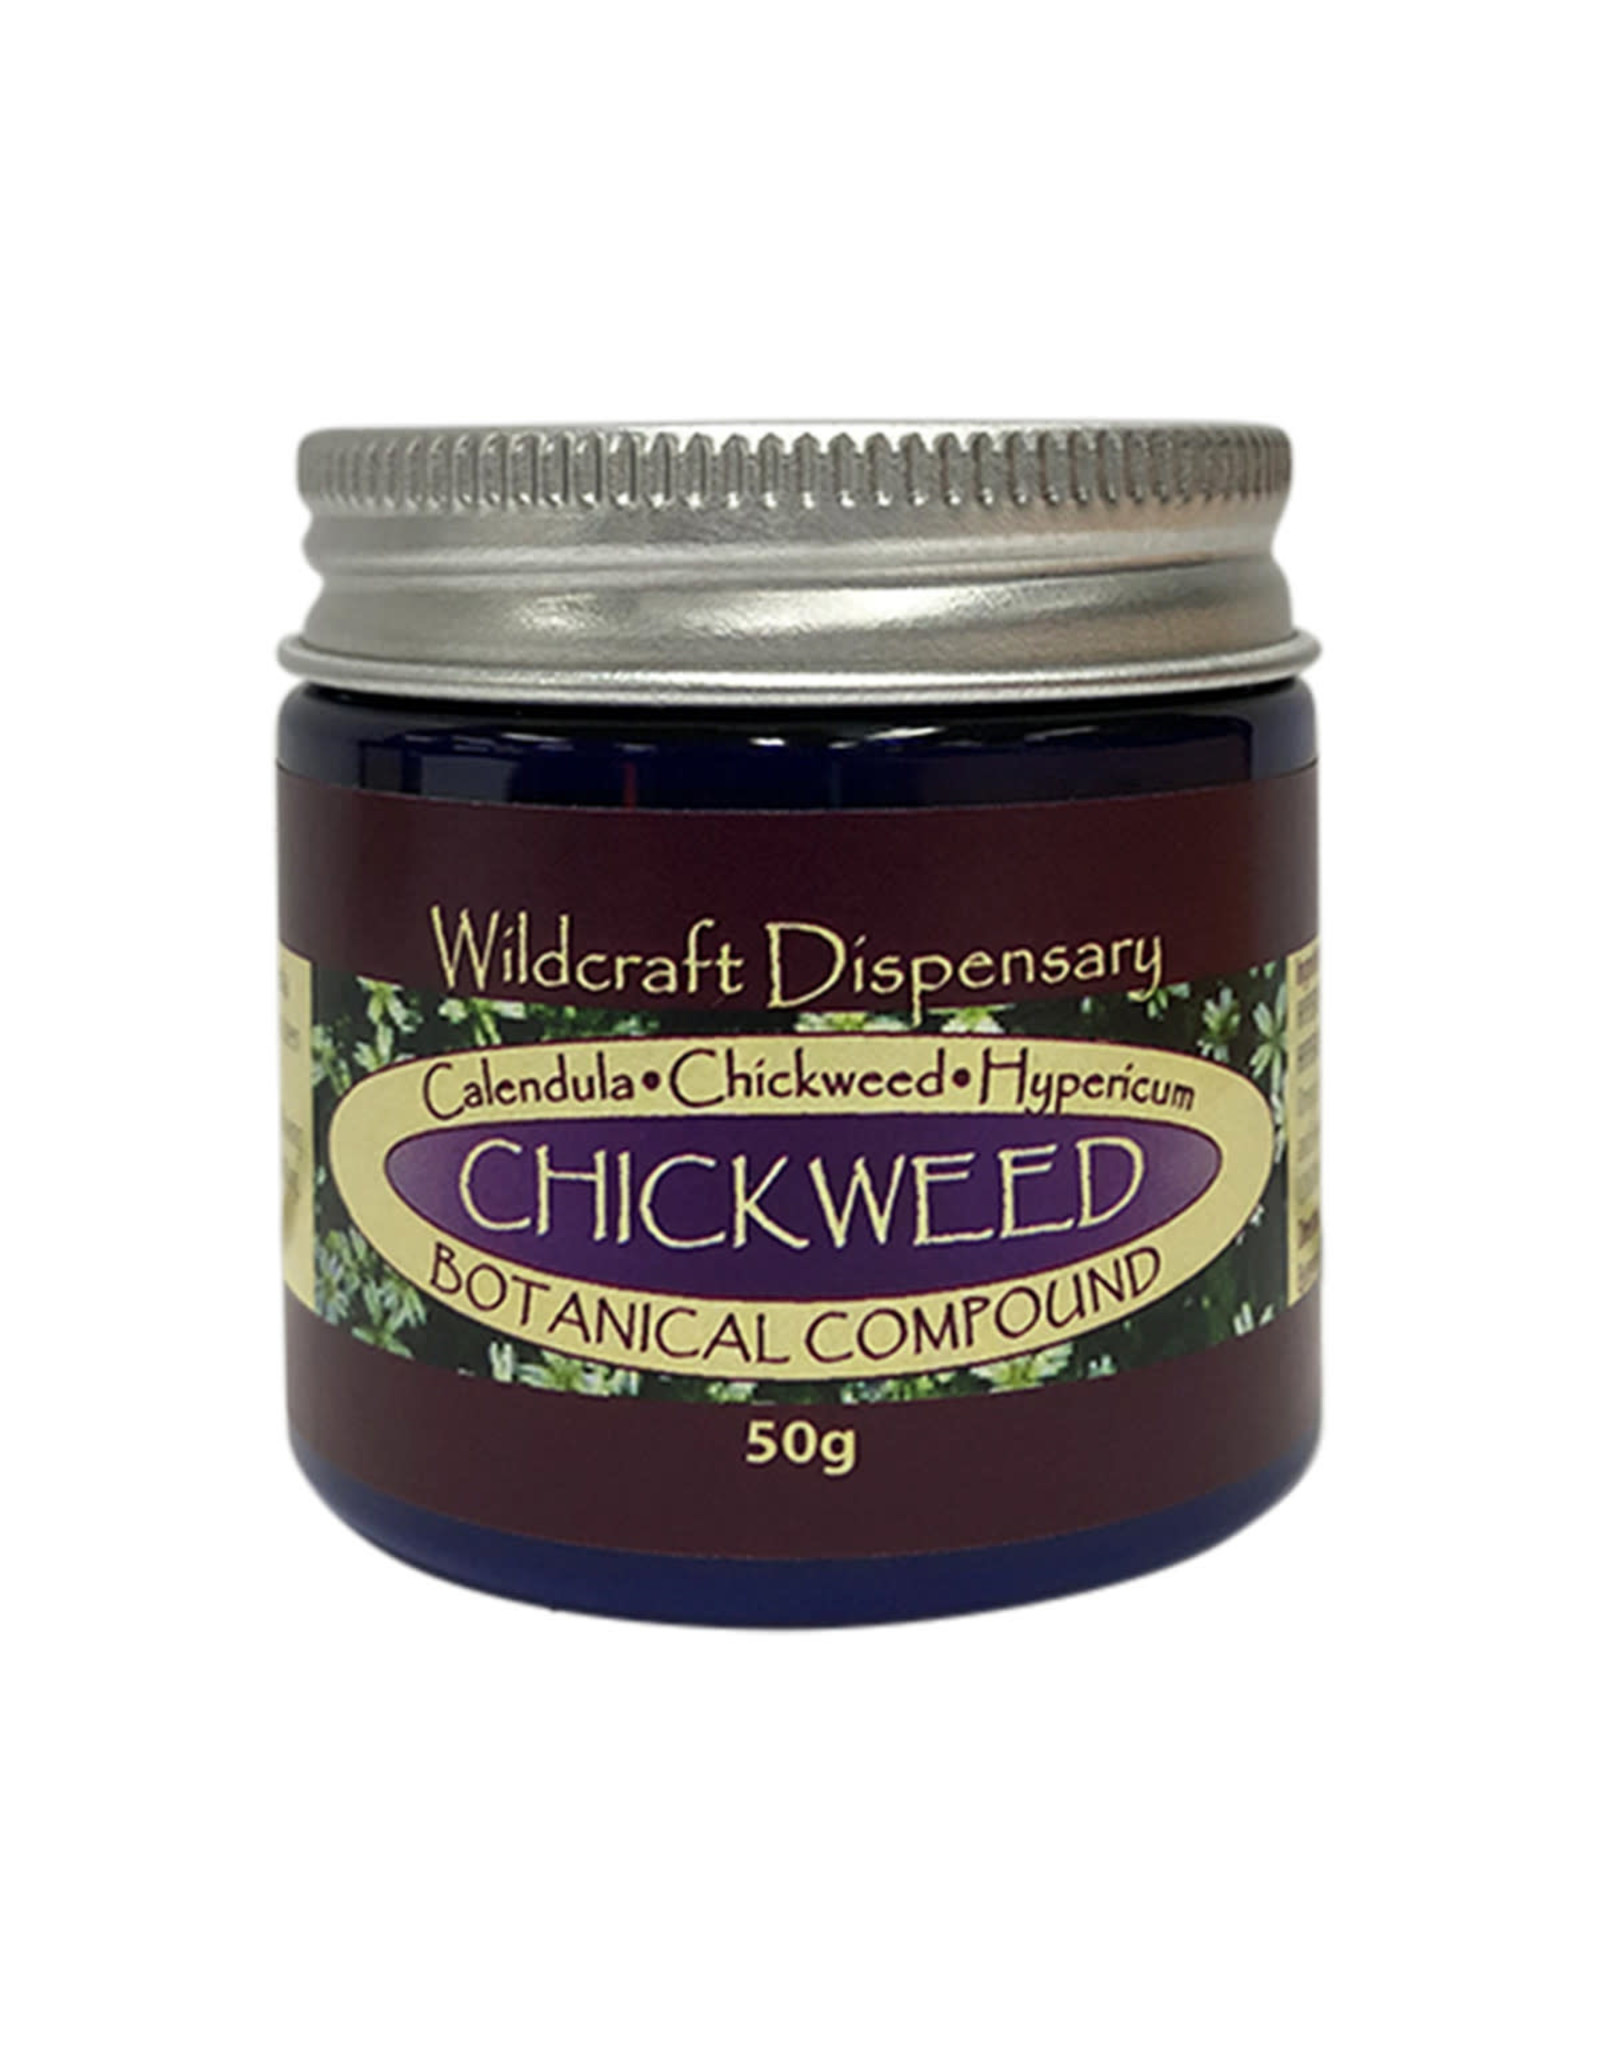 Wildcraft Dispensary Chickweed Natural Ointment 50g